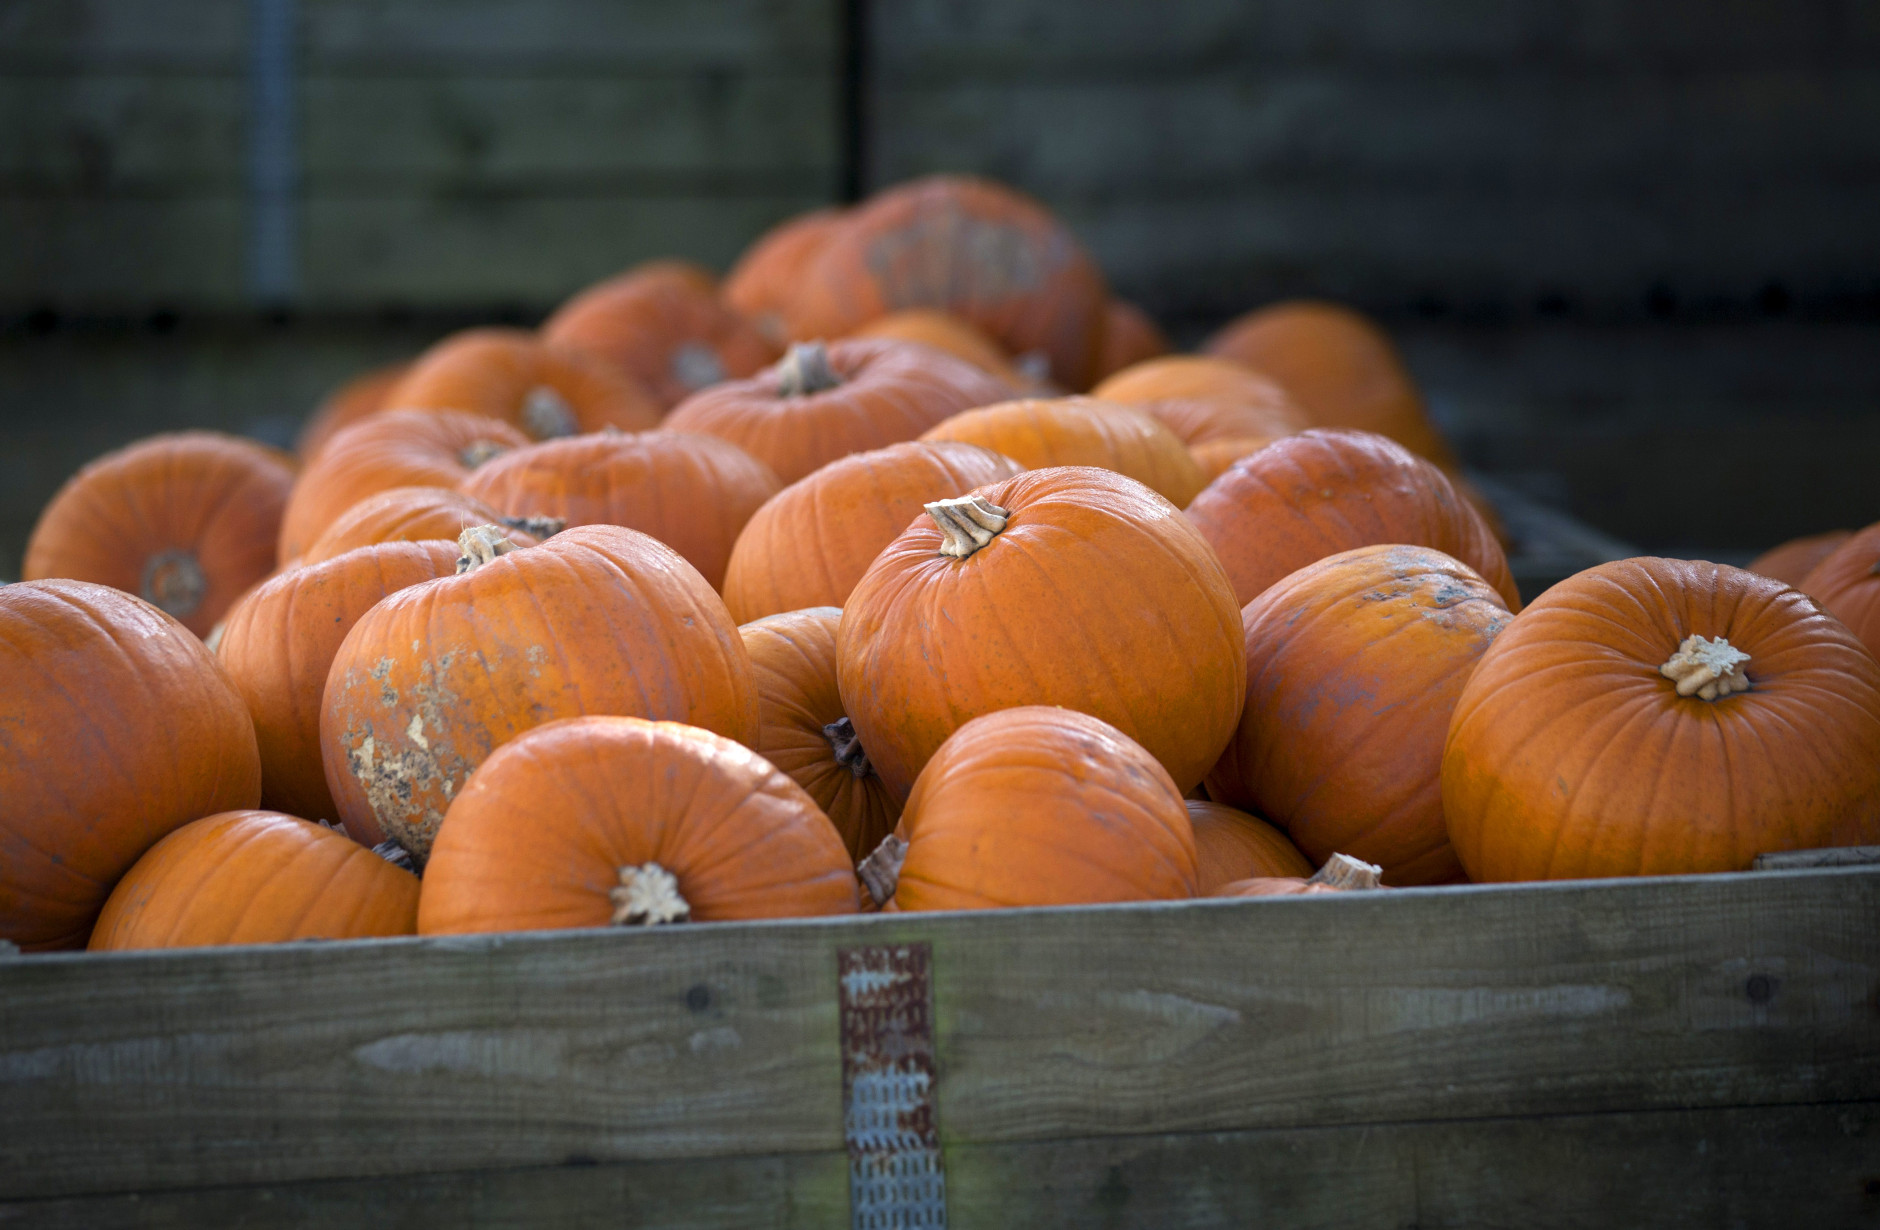 LANDFORD, UNITED KINGDOM - OCTOBER 22:  Pumpkins from Lyburn Farm in Landford are collected for market on October 22, 2014 in Wiltshire, England. Although some farmers have been warning of a pumpkin shortage due to the recent wet weather, the main supermarkets are confident of meeting demand which has increased as the popularity of Halloween grows in the UK. Out of the 10 million pumpkins it is estimated that will be grown this year, the majority will be made into Halloween lanterns.  (Photo by Matt Cardy/Getty Images)